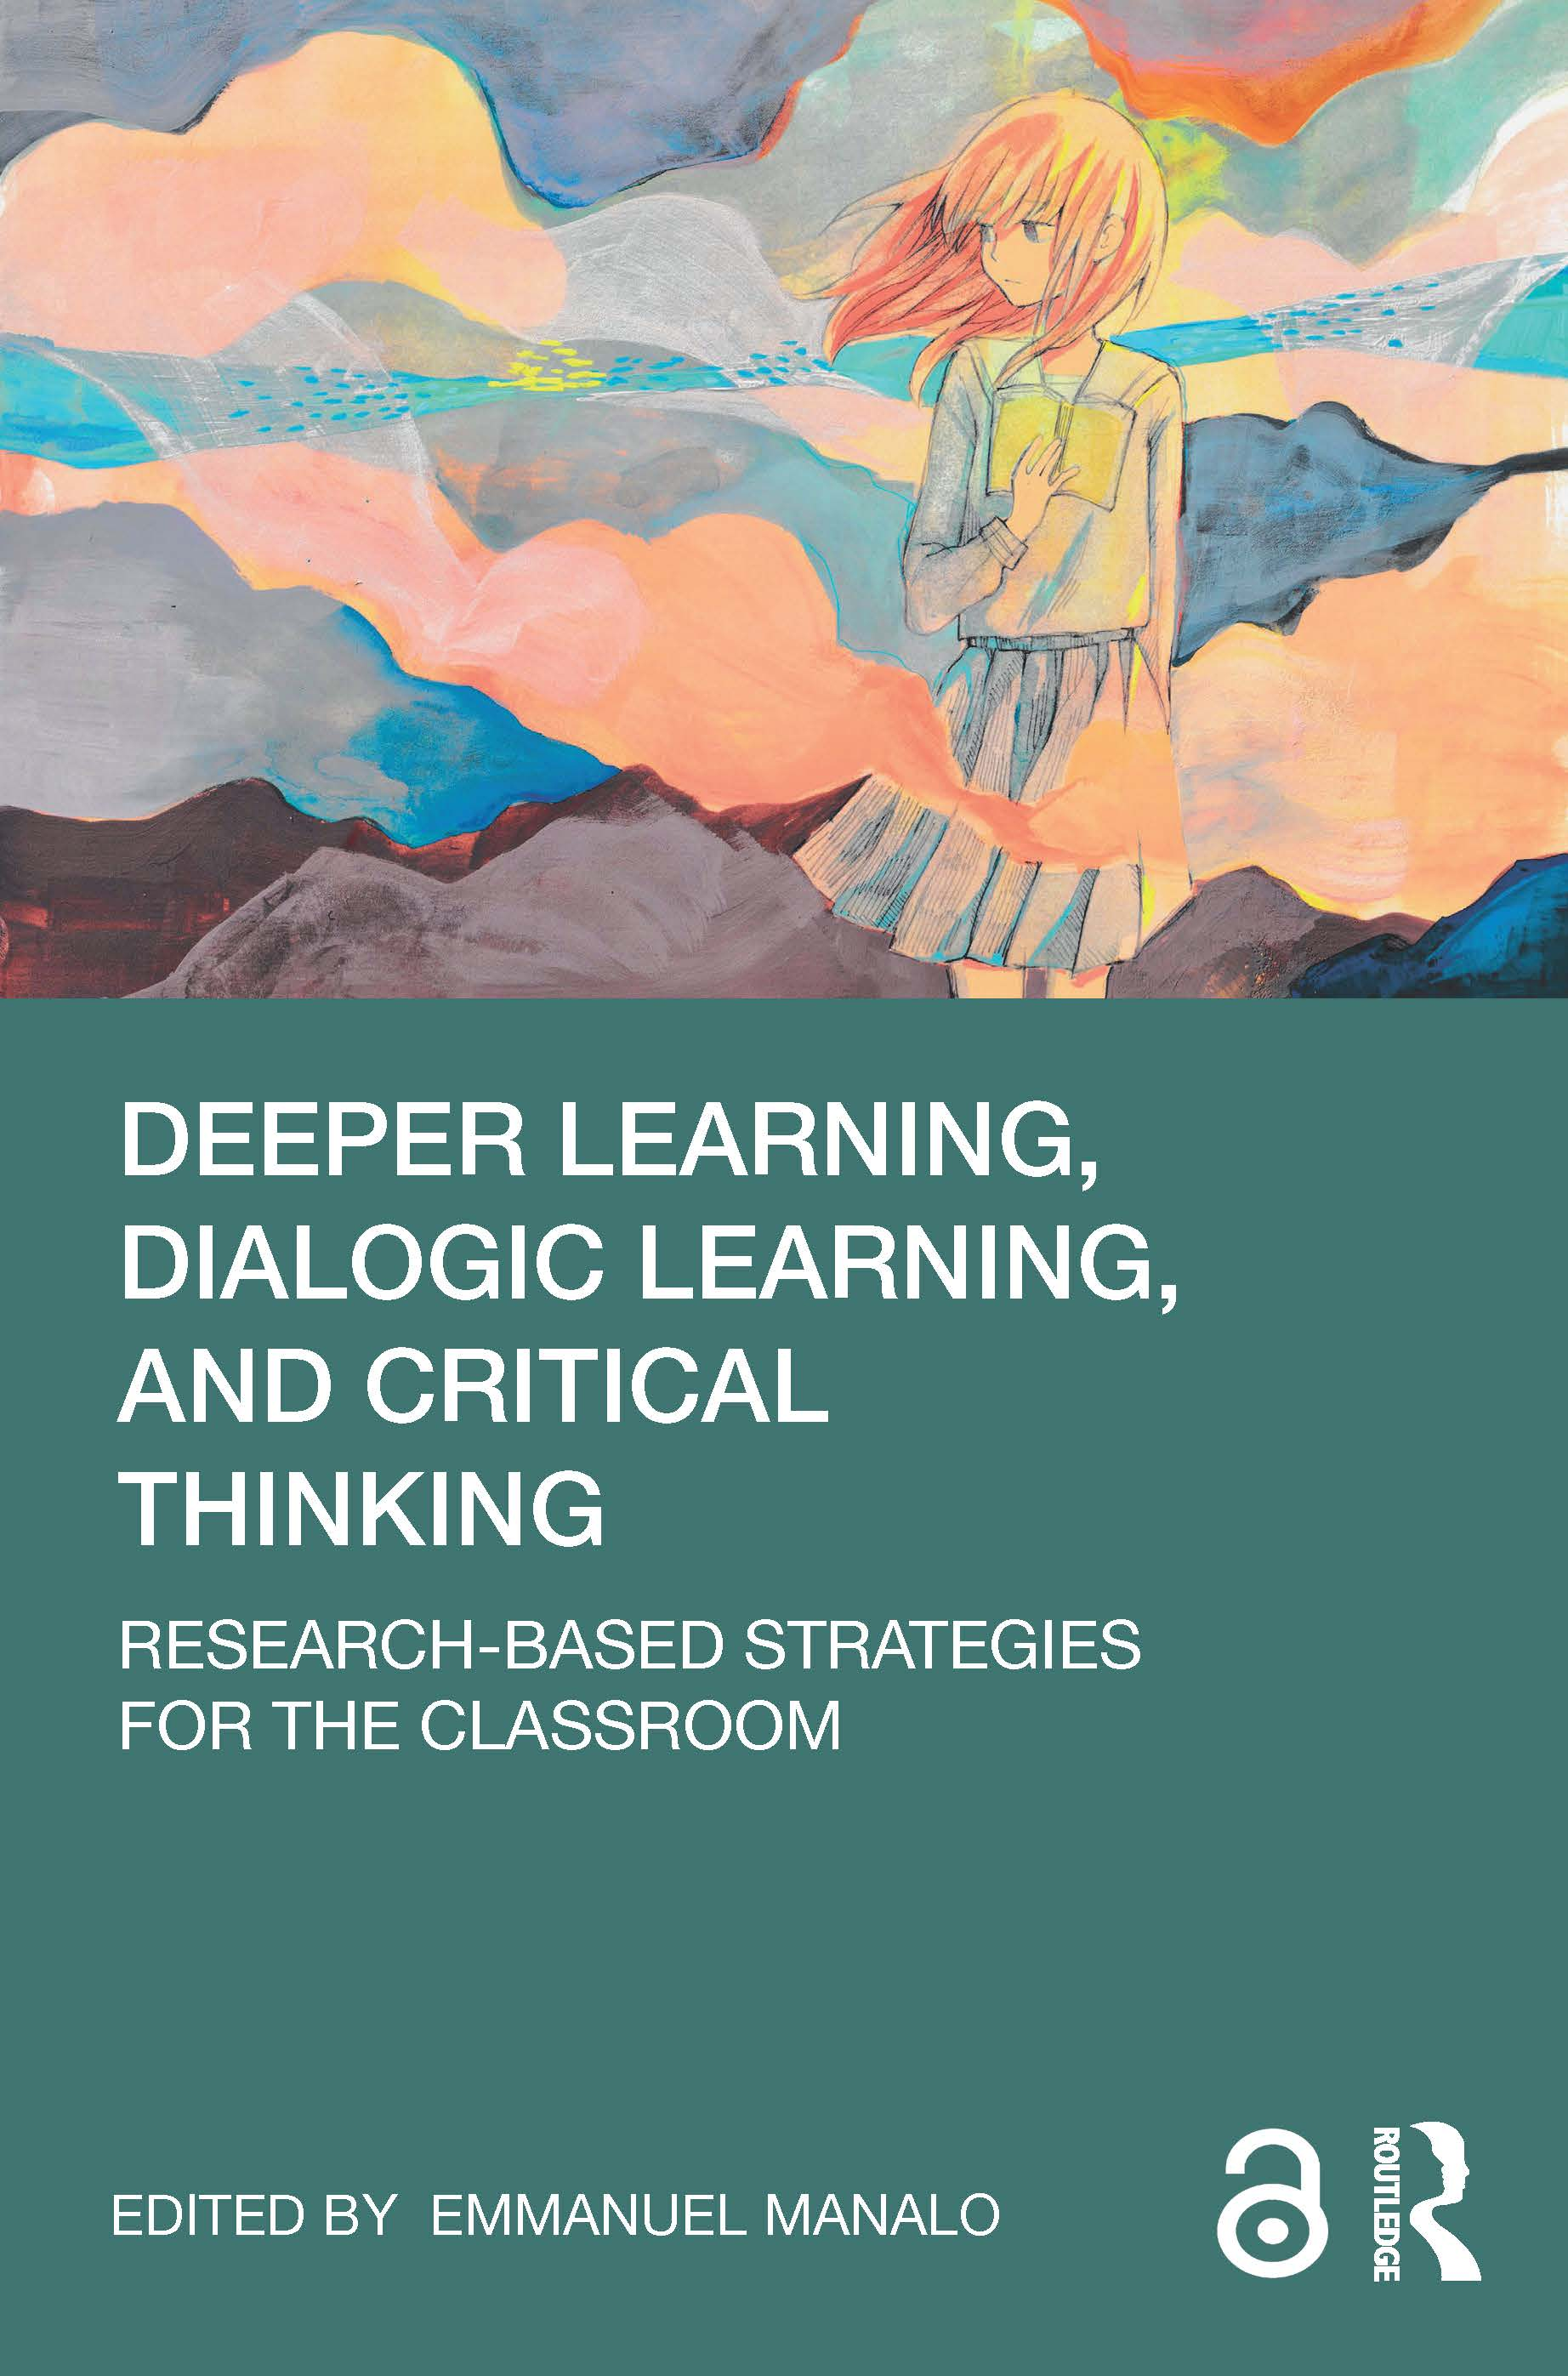 Deeper Learning, Dialogic Learning, and Critical Thinking: Research-based Strategies for the Classroom book cover